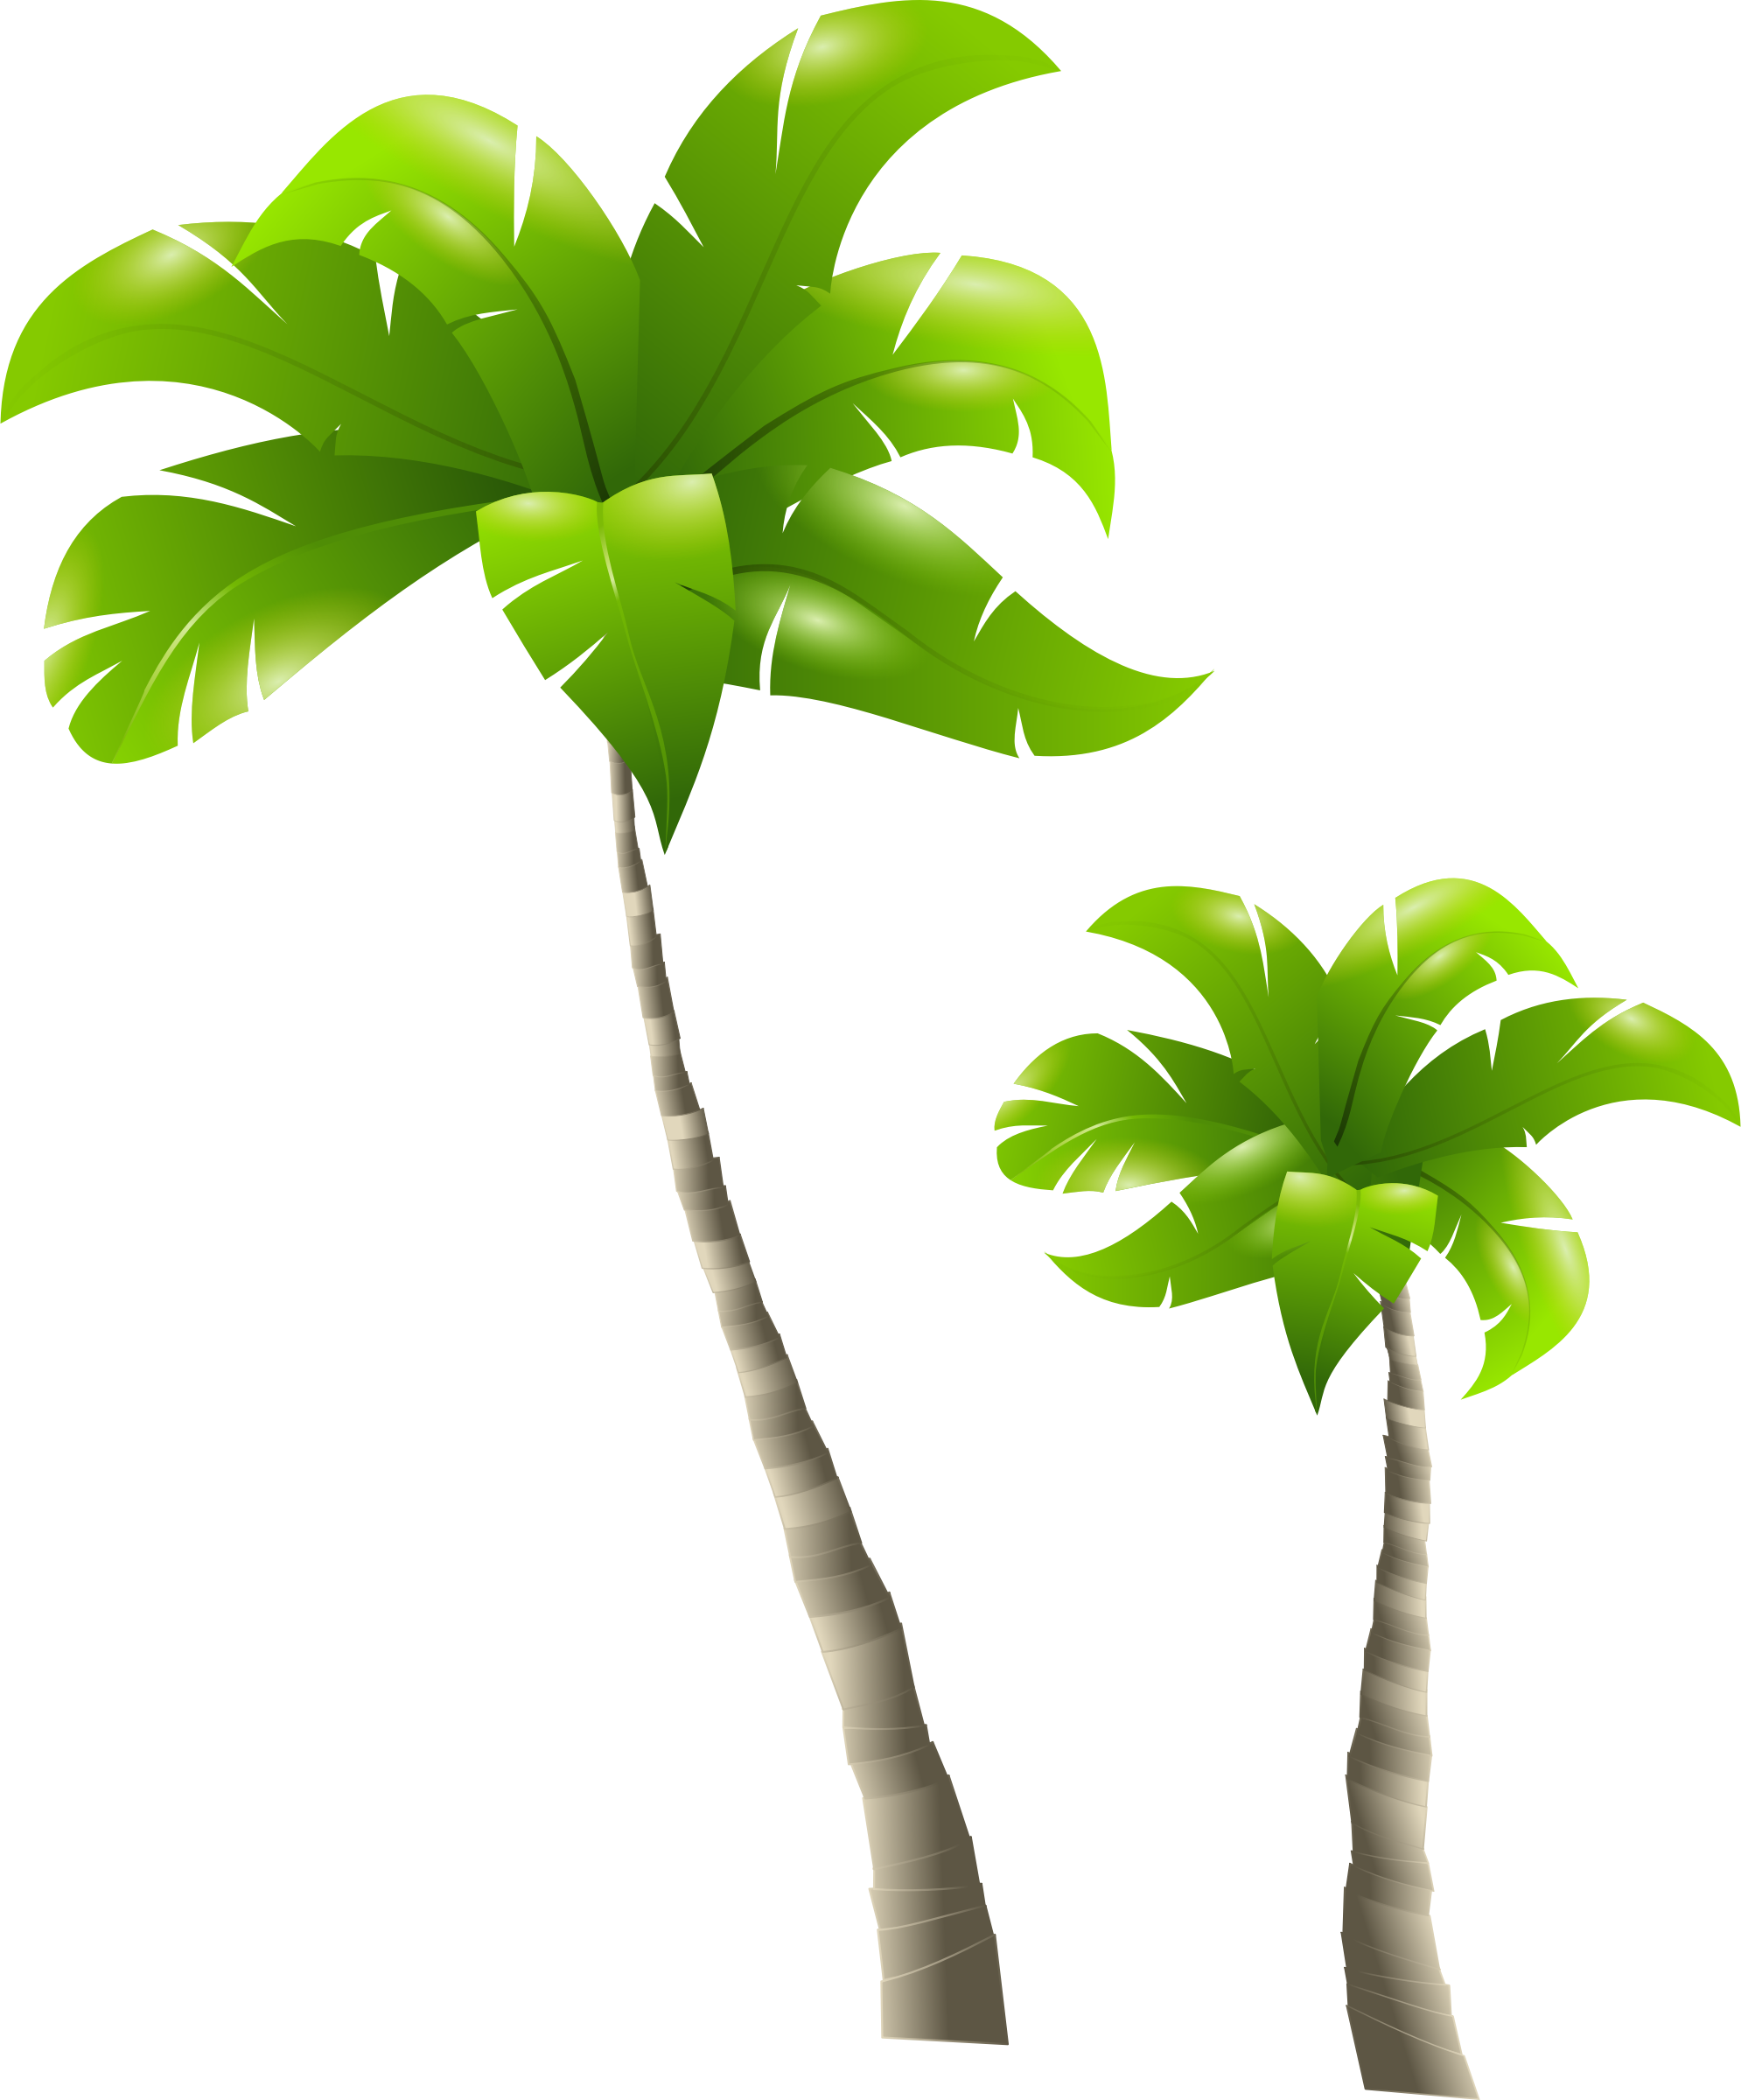 Palm Trees - Palmiers by cyberscooty: https://openclipart.org/detail/182635/palm-trees-palmiers